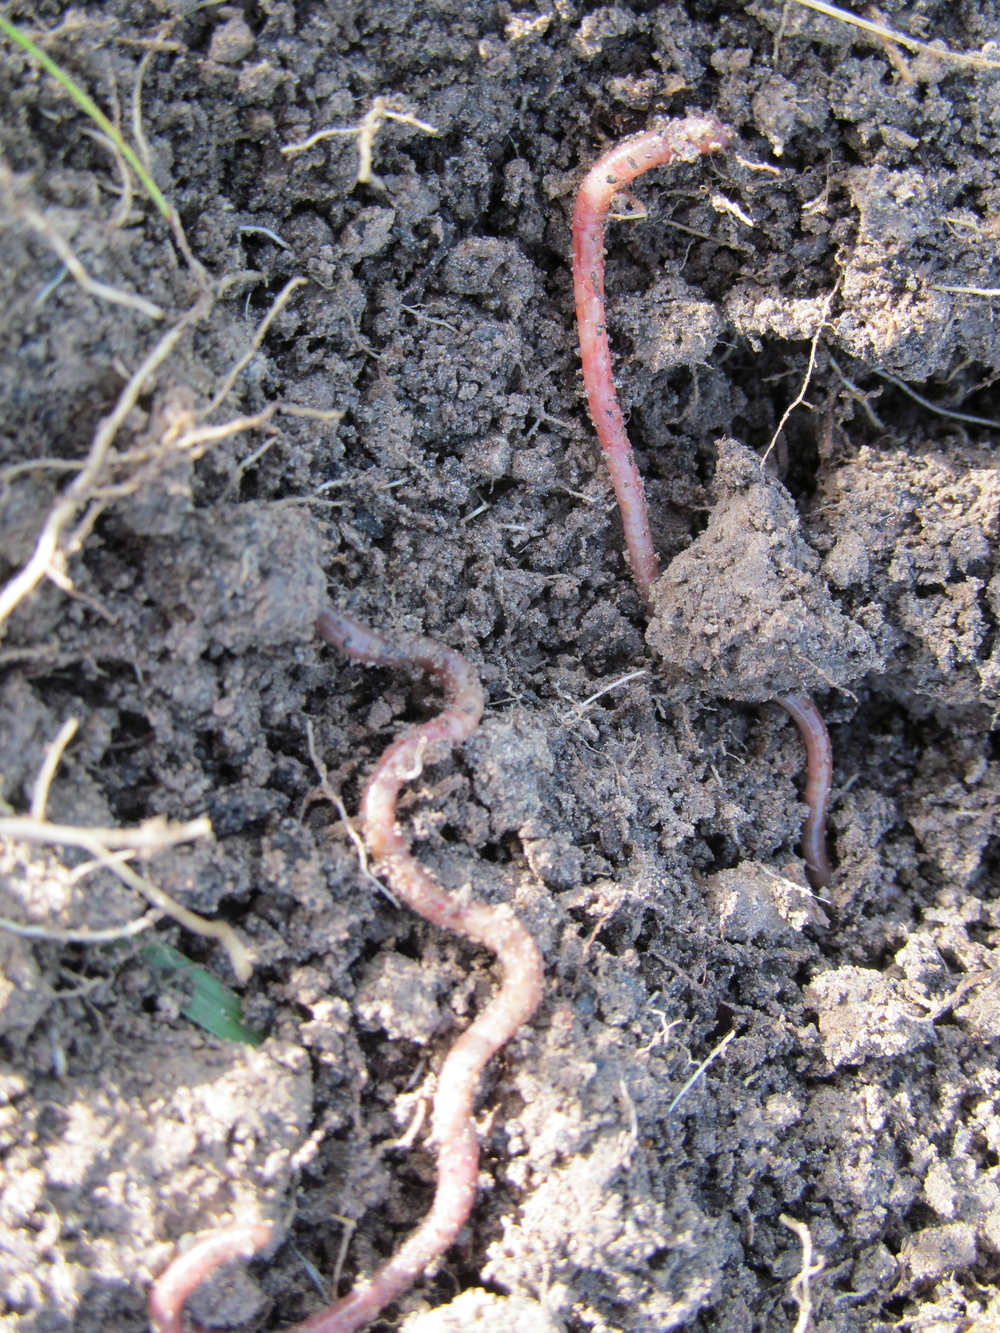 Earthworm party!